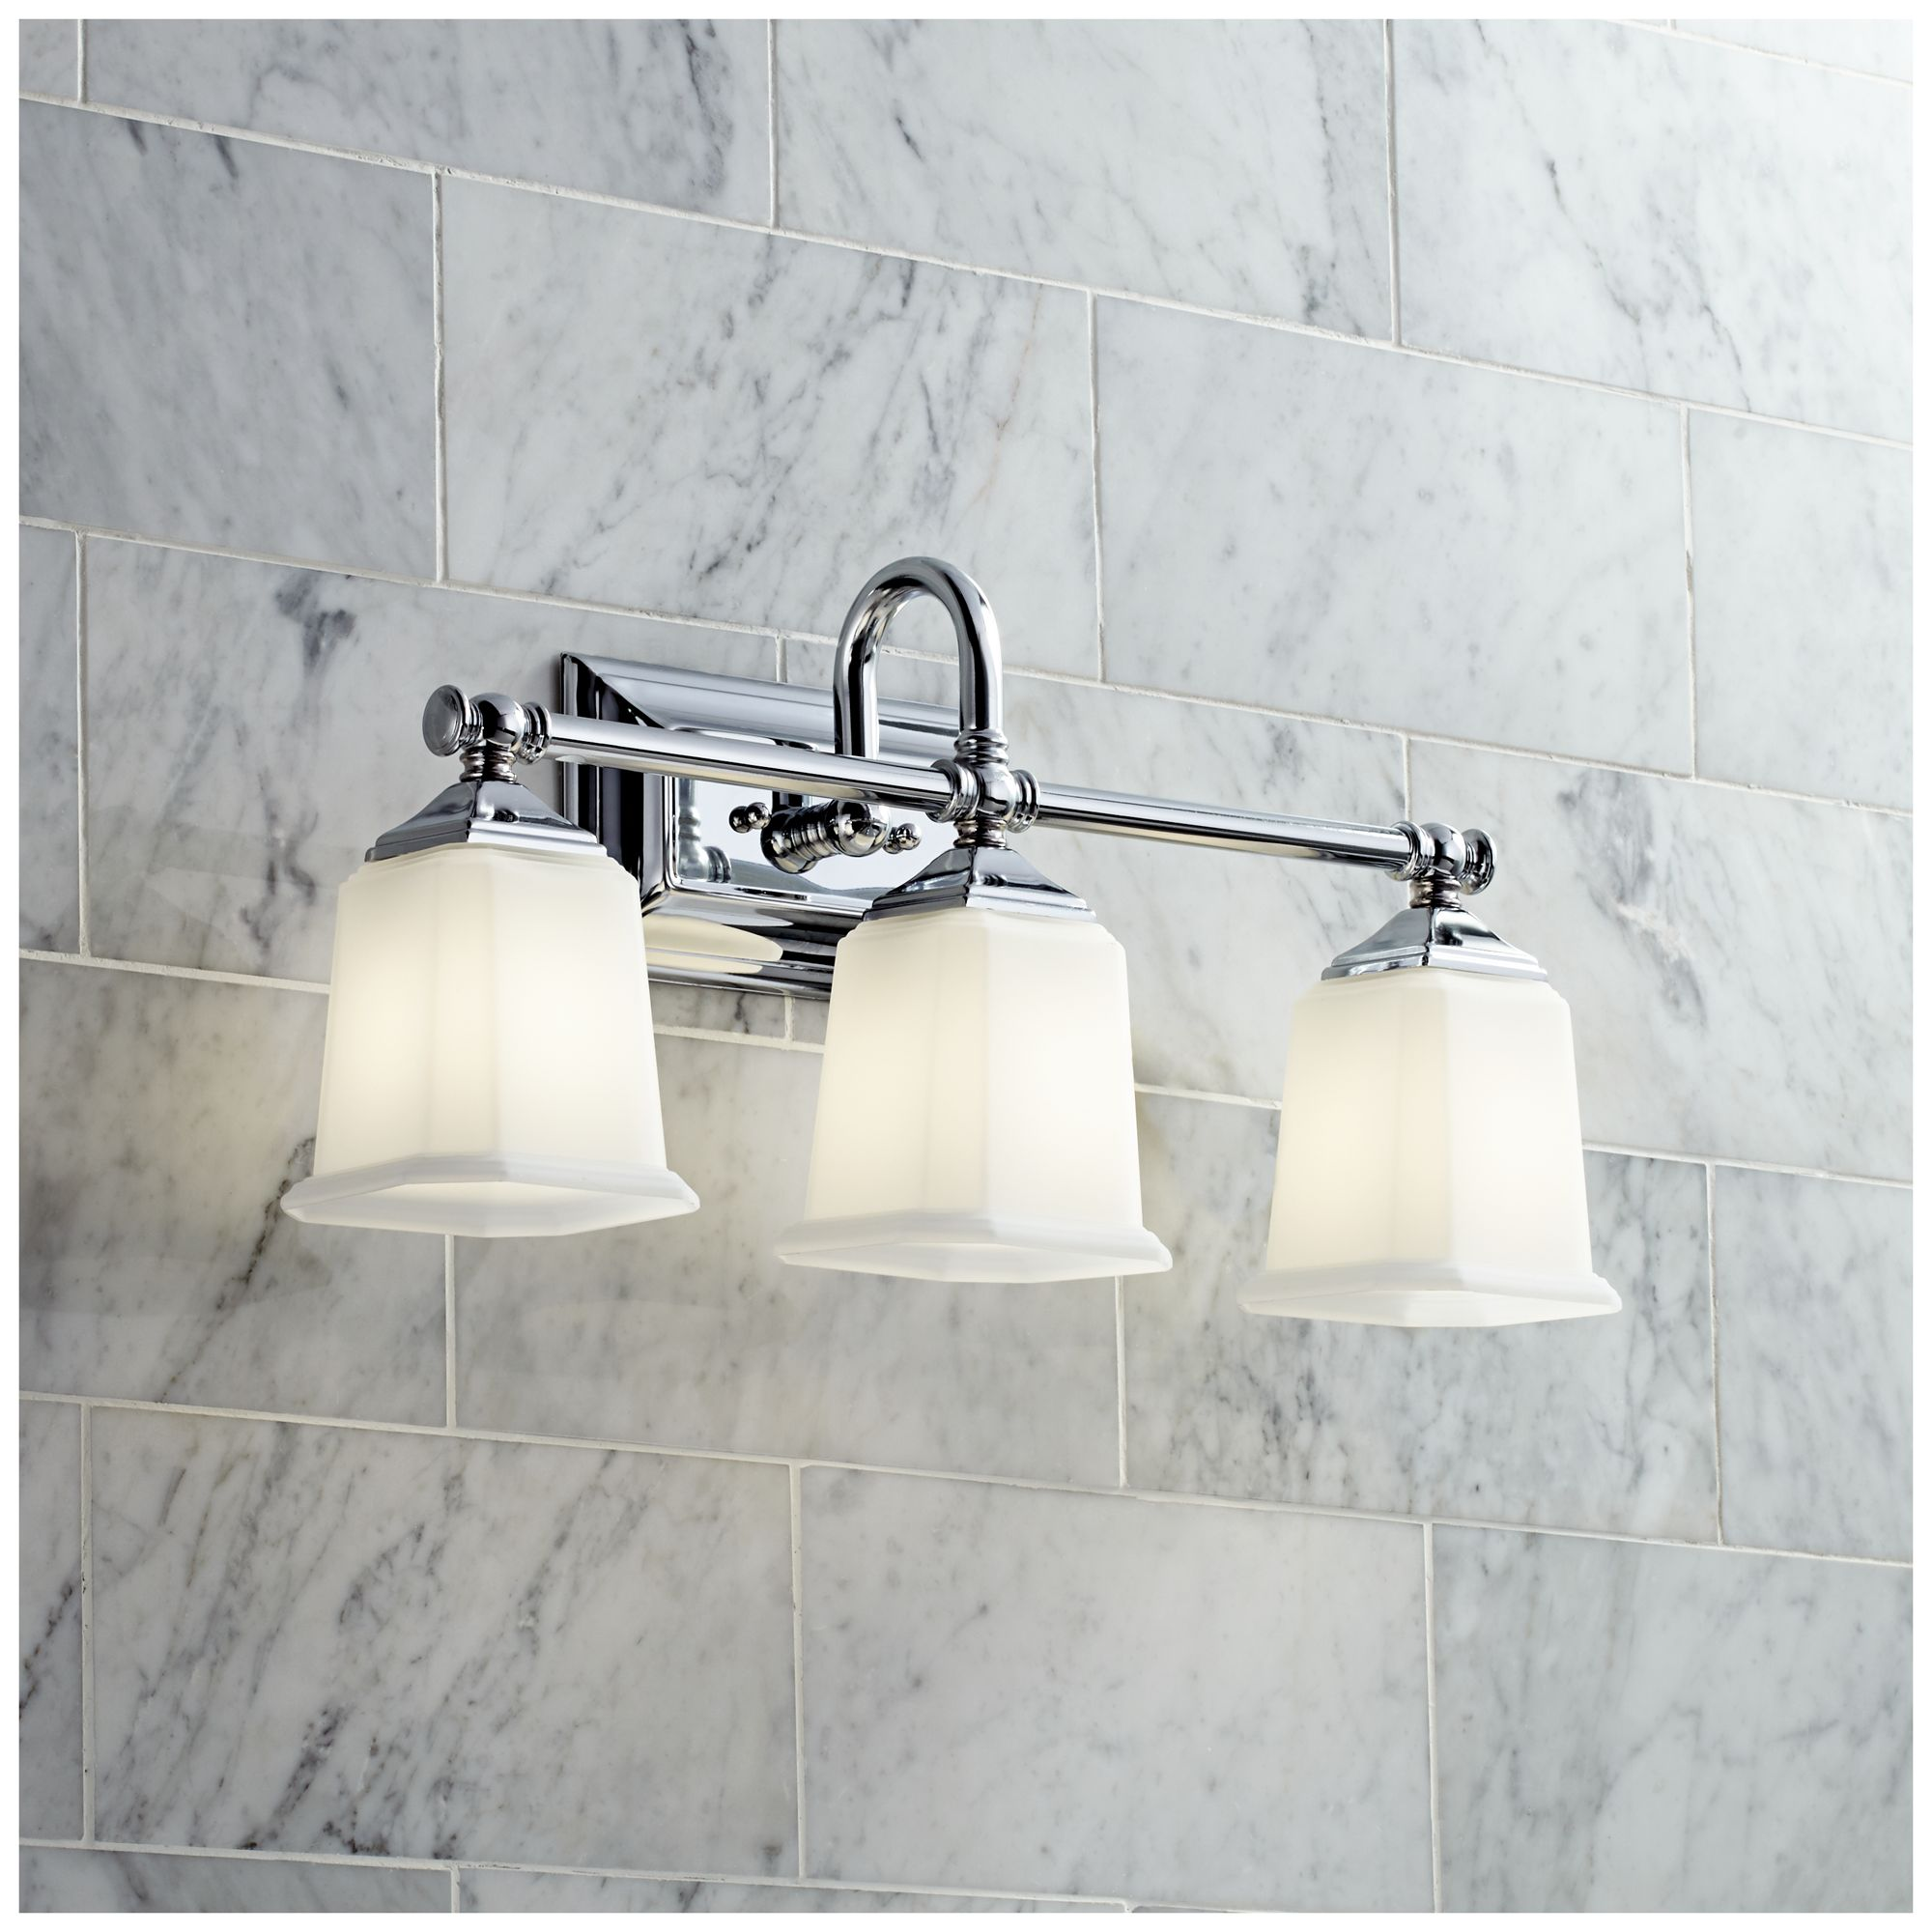 Quoizel TRG8603 Trilogy 3 Light Bathroom Vanity Light. Nicholas Collection  Polished Chrome 22